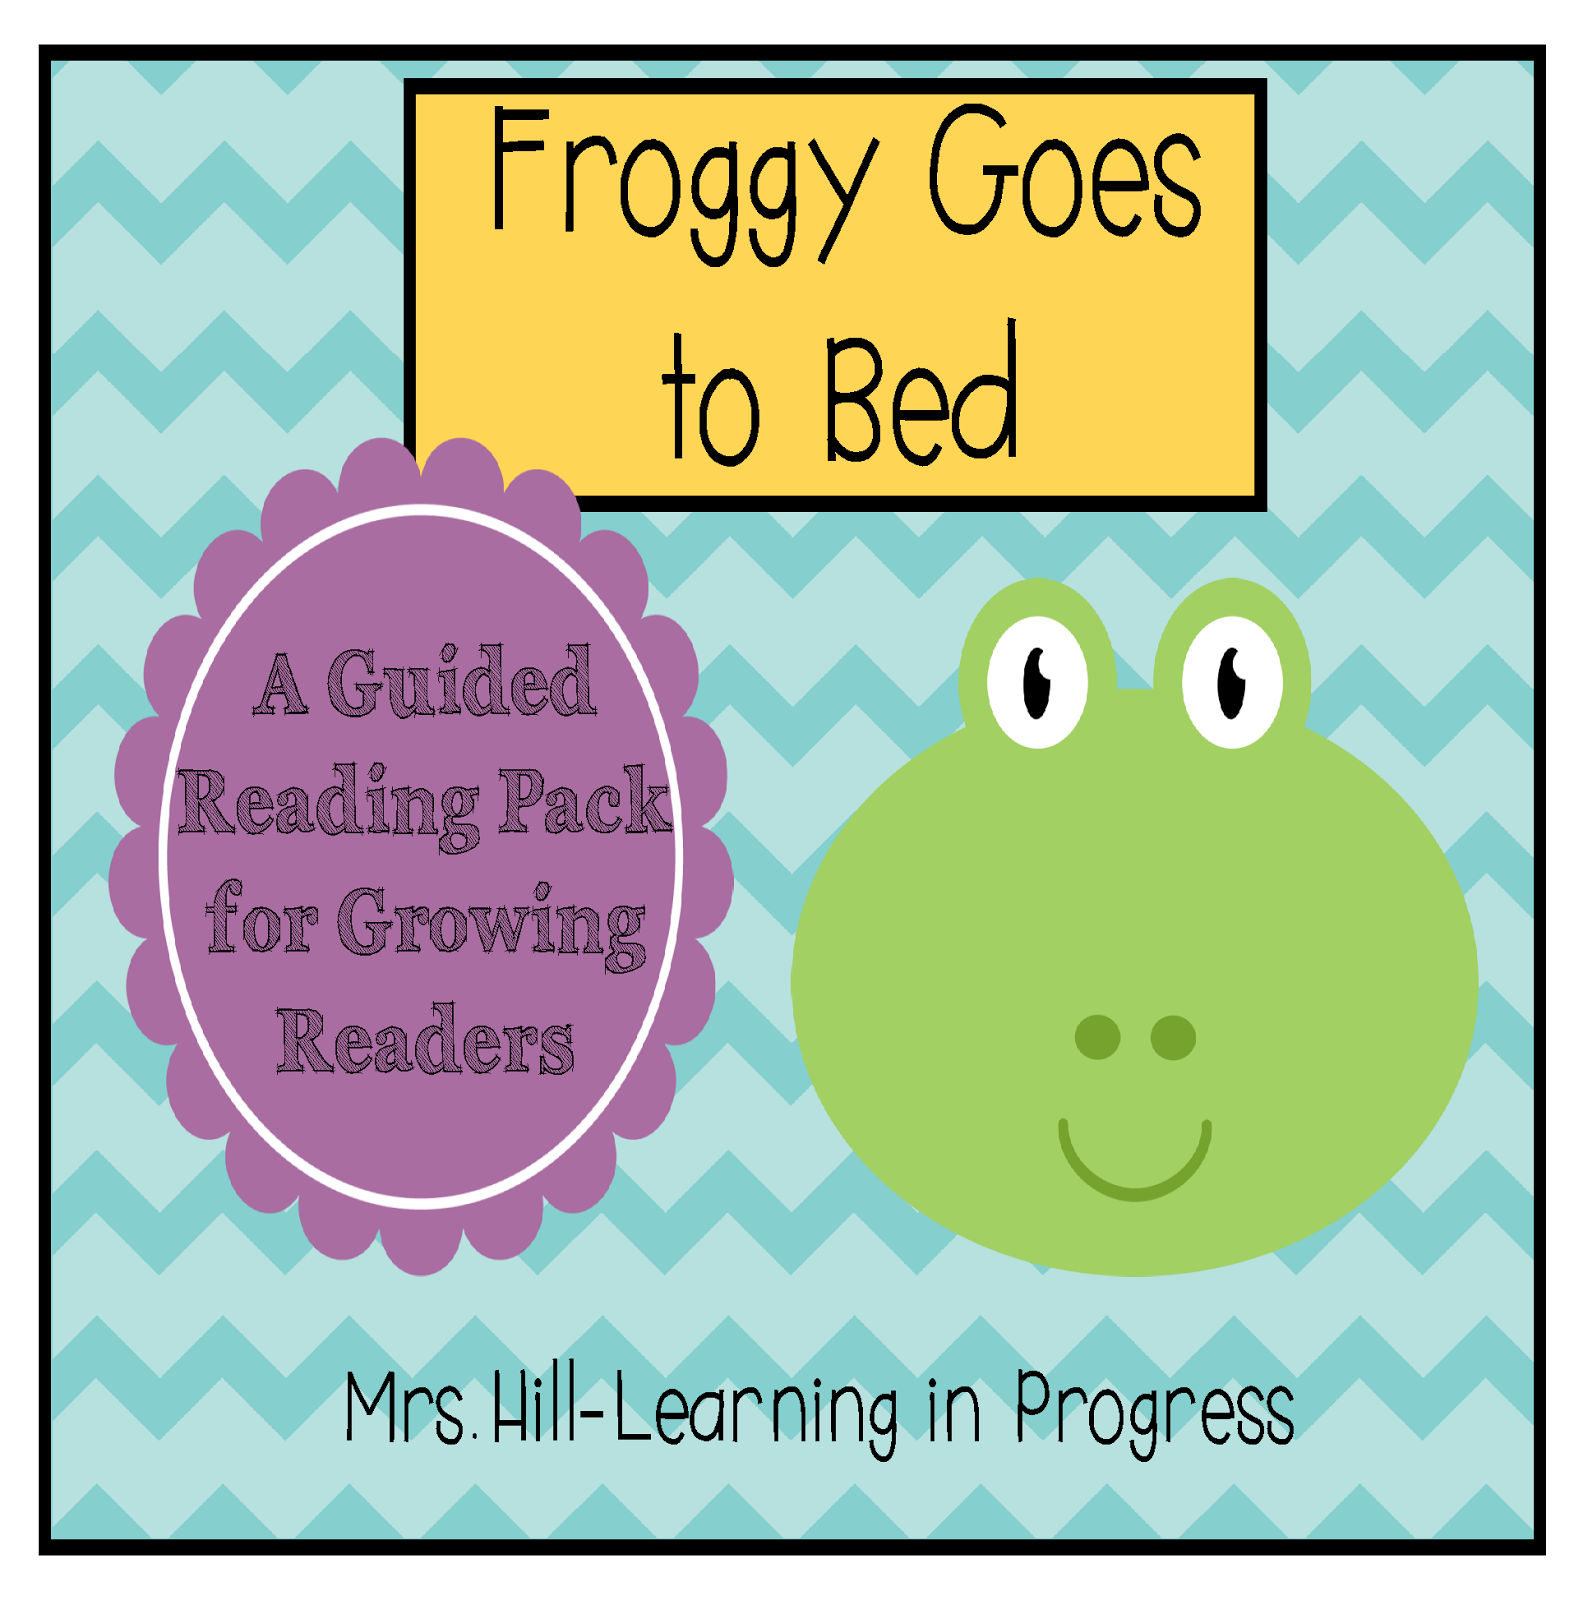 http://www.teacherspayteachers.com/Product/Froggy-Goes-to-Bed-Guided-Reading-for-Growing-Readers-1226348